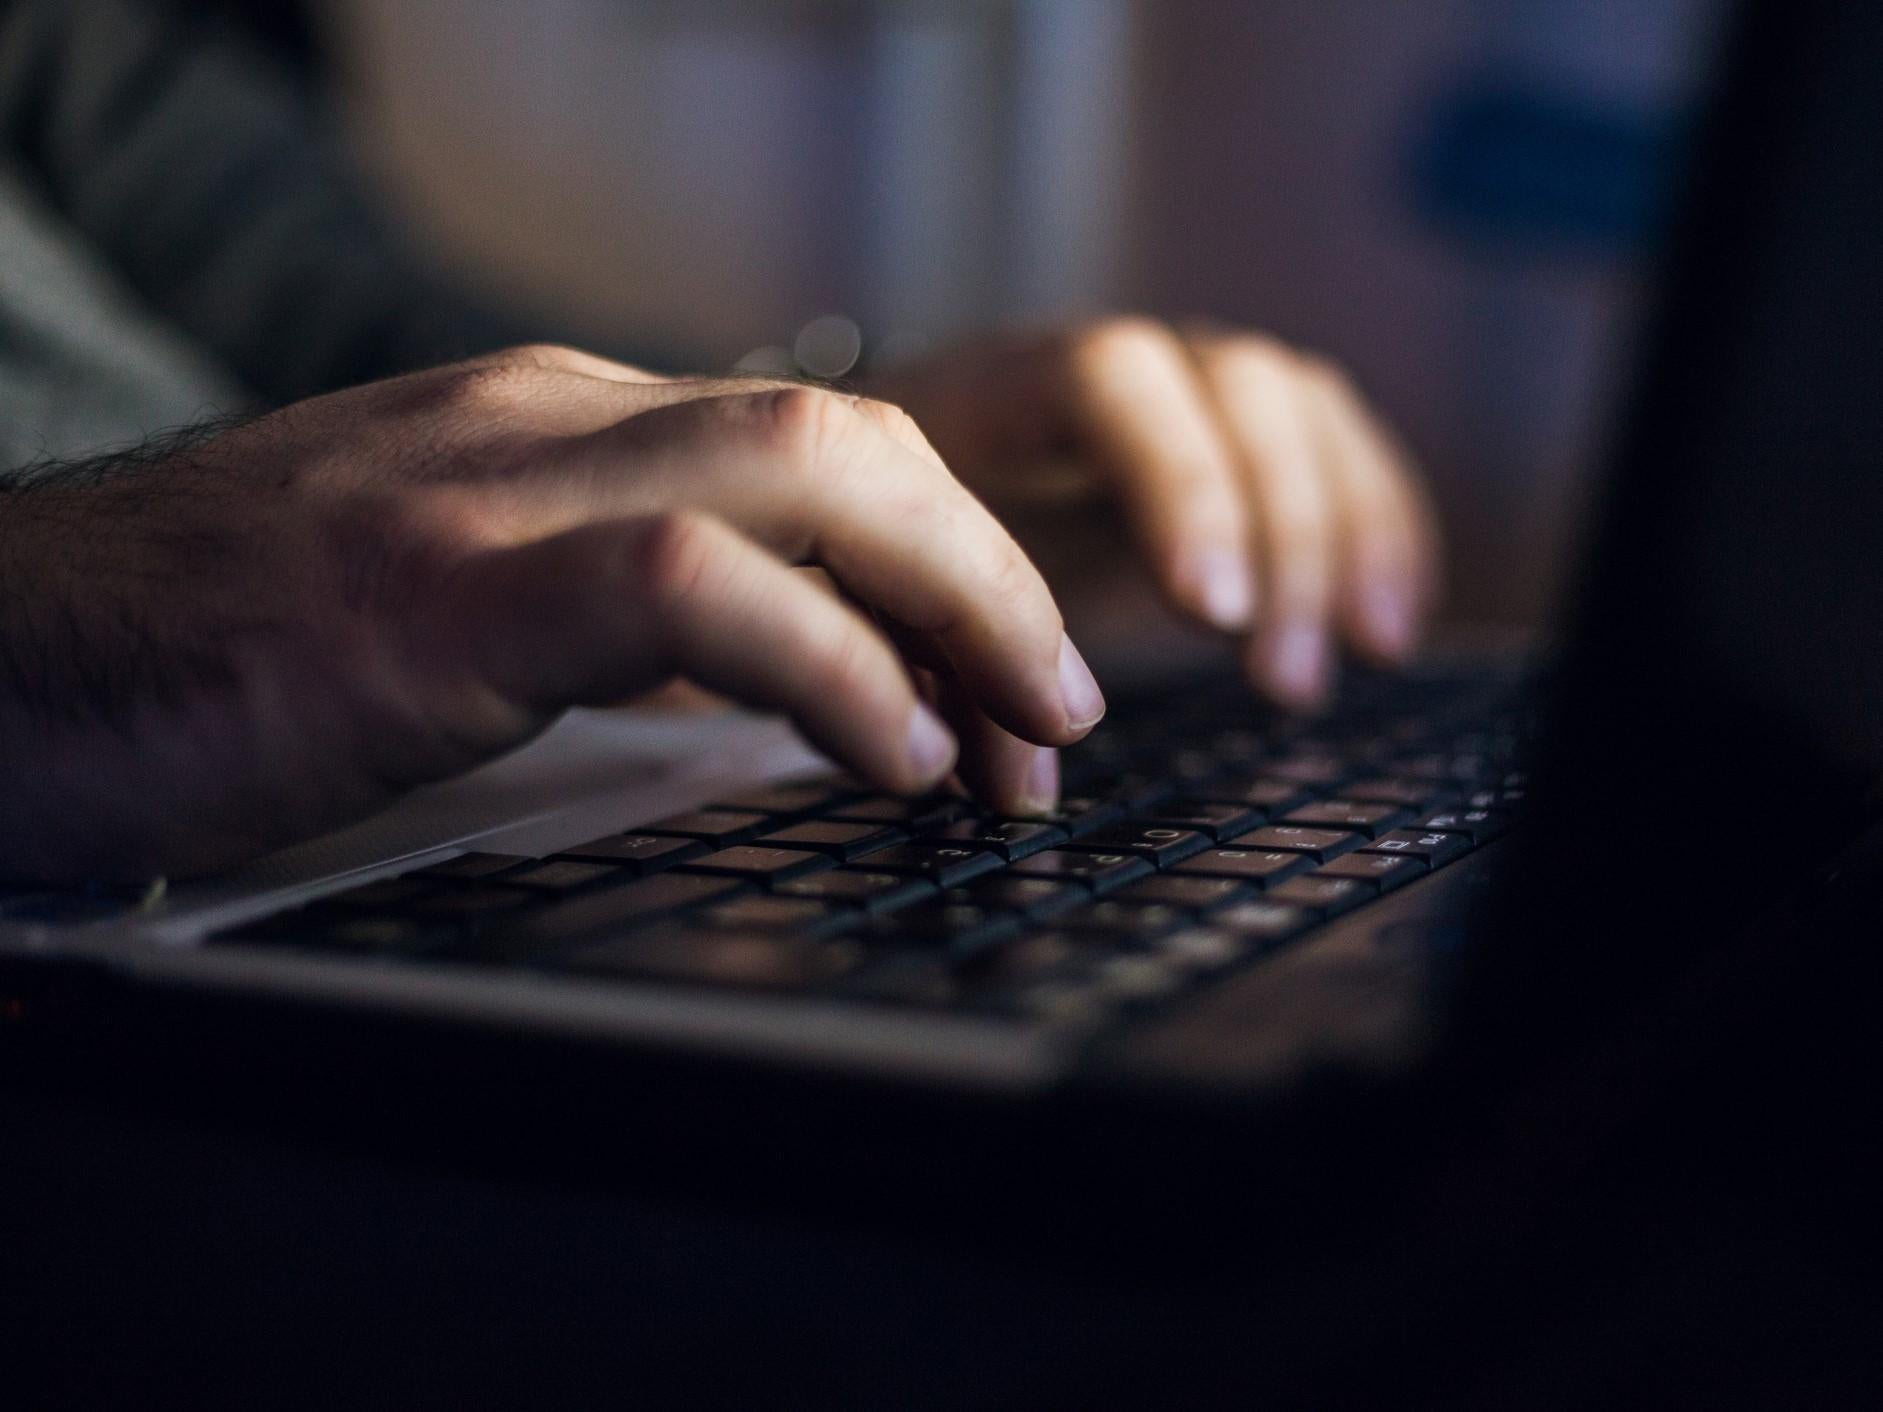 Hackers can figure out passwords just from the sound of typing